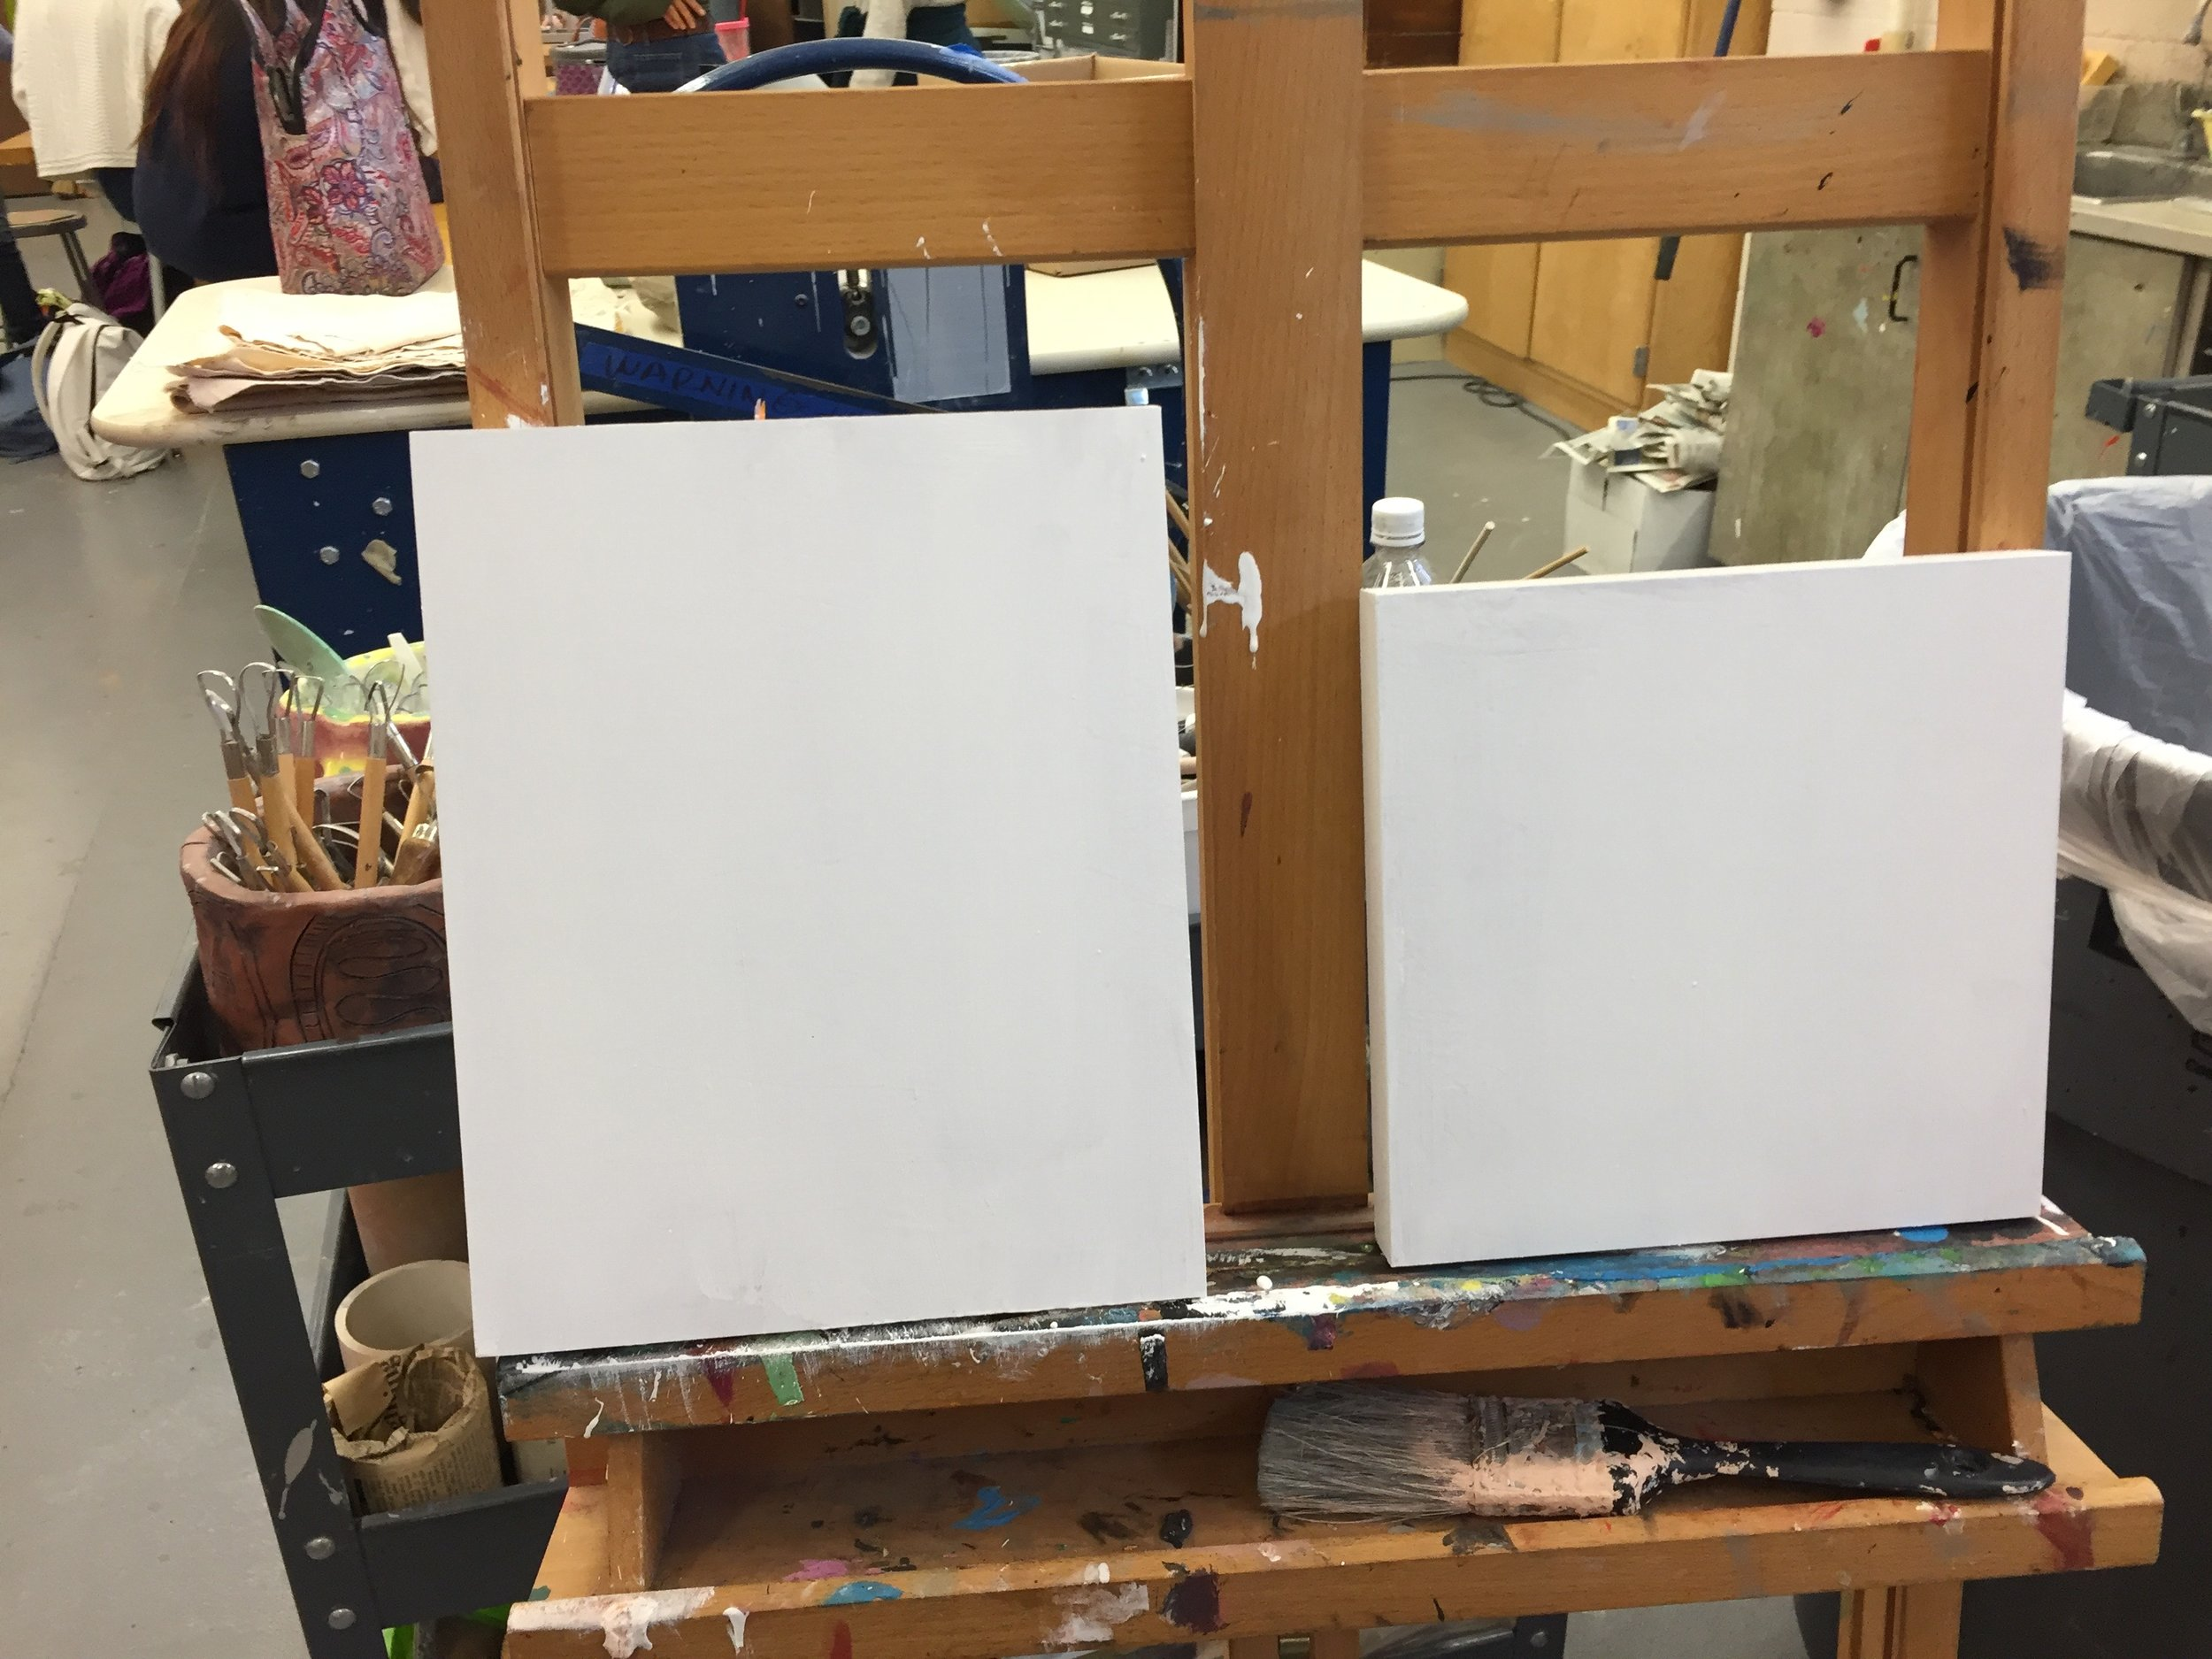 Working on painting a base layer on the wooden canvas.